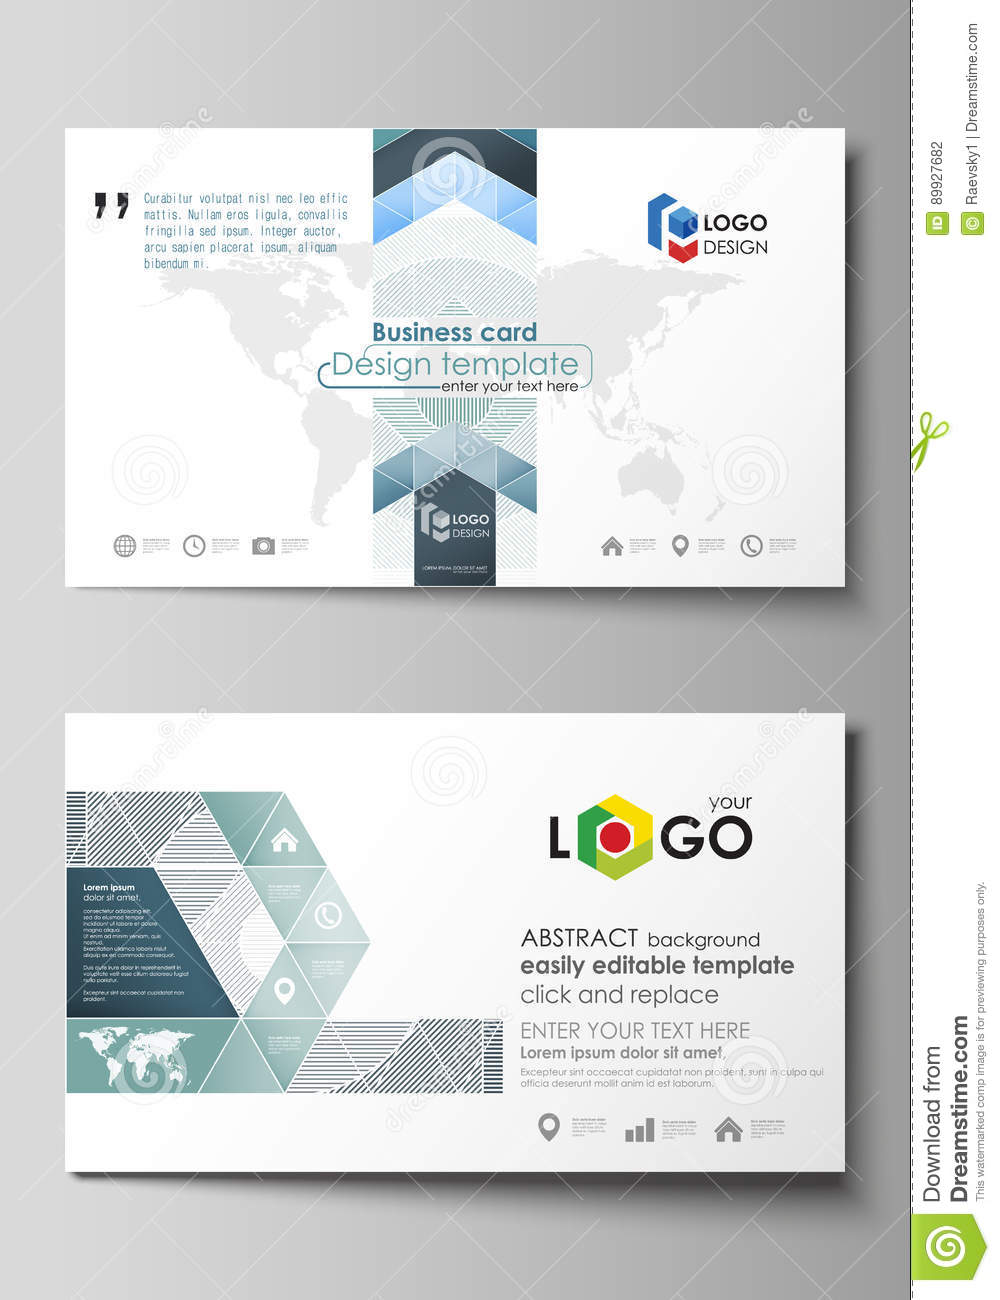 Business card templates easy editable layout abstract vector business card templates easy editable layout abstract vector design template minimalistic background with lines gray alramifo Images